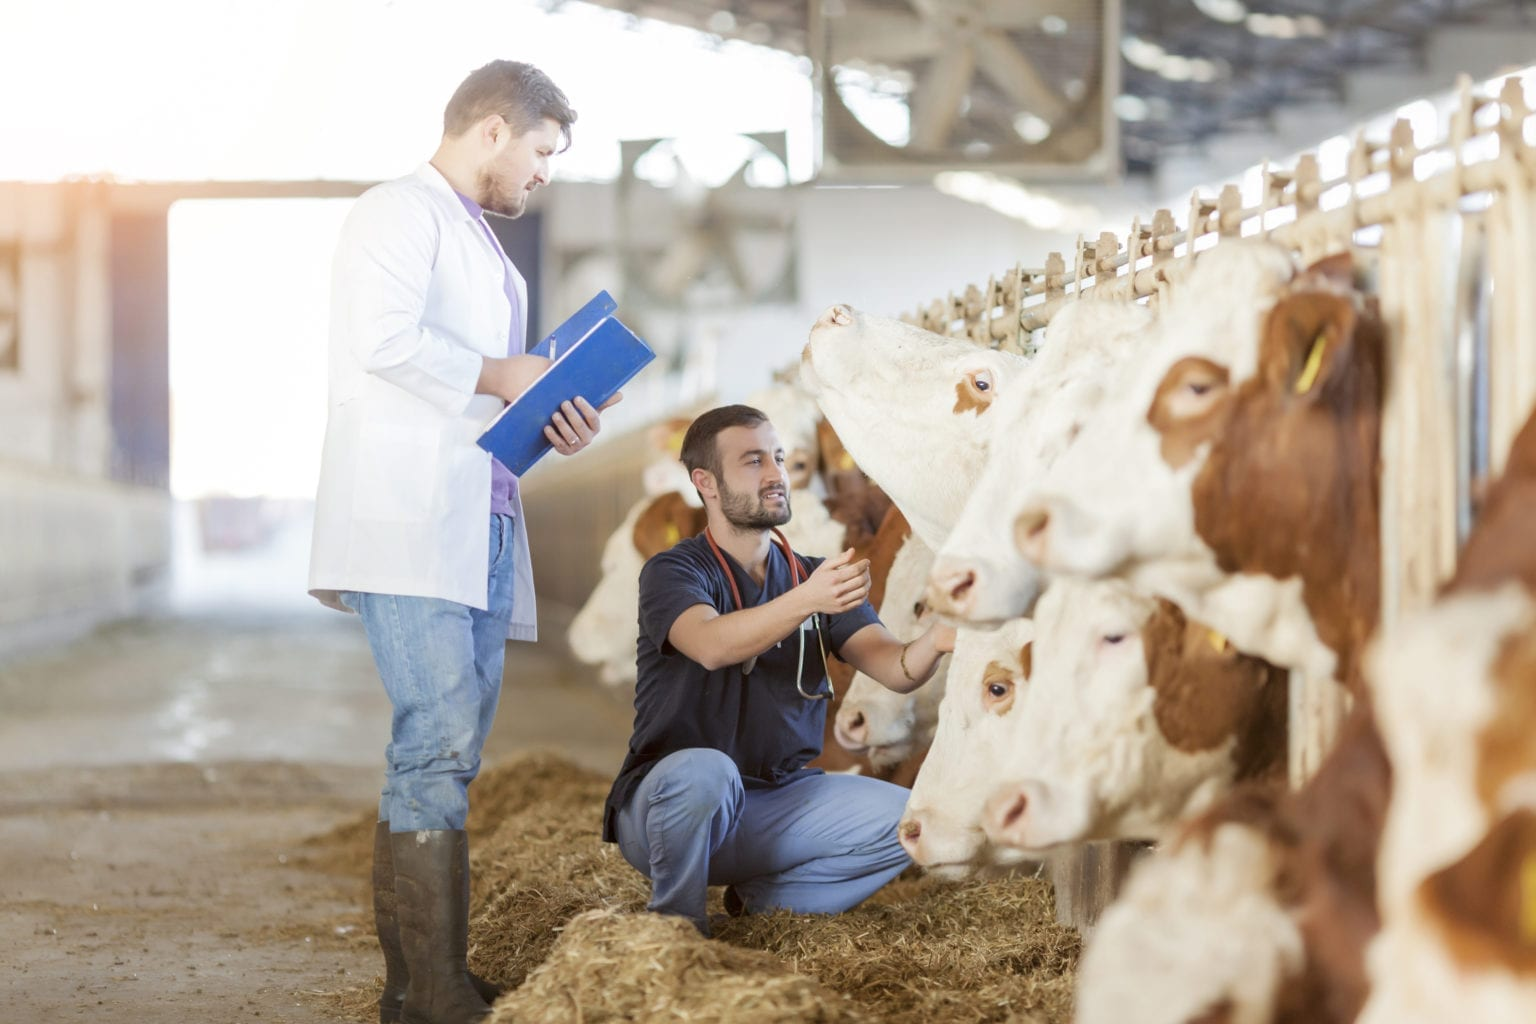 Vet and farming in barn with cow